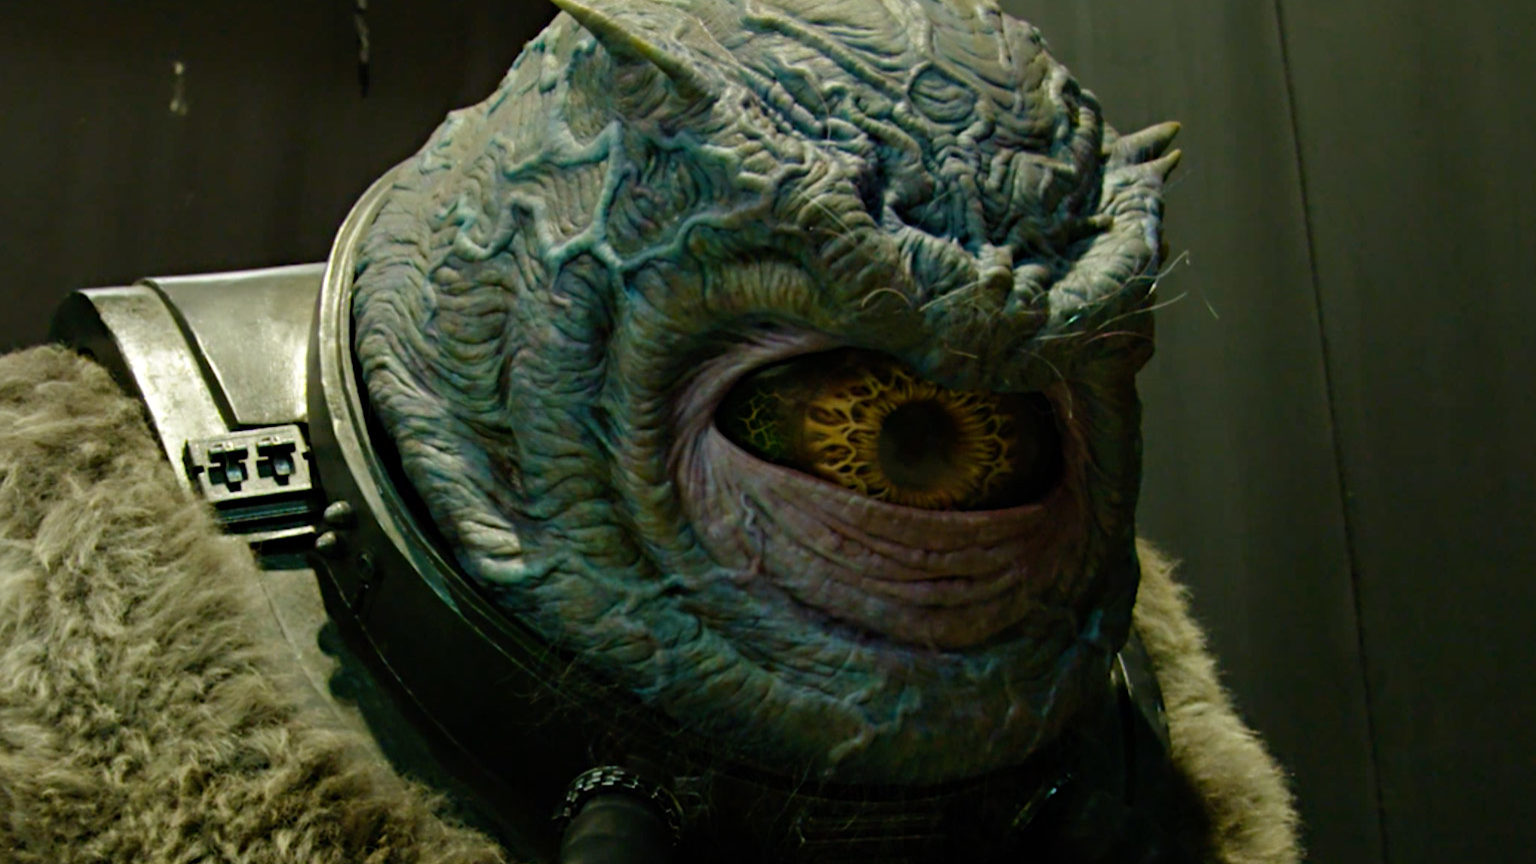 An alien known as Big Eye is seen from Solo: A Star Wars Story.